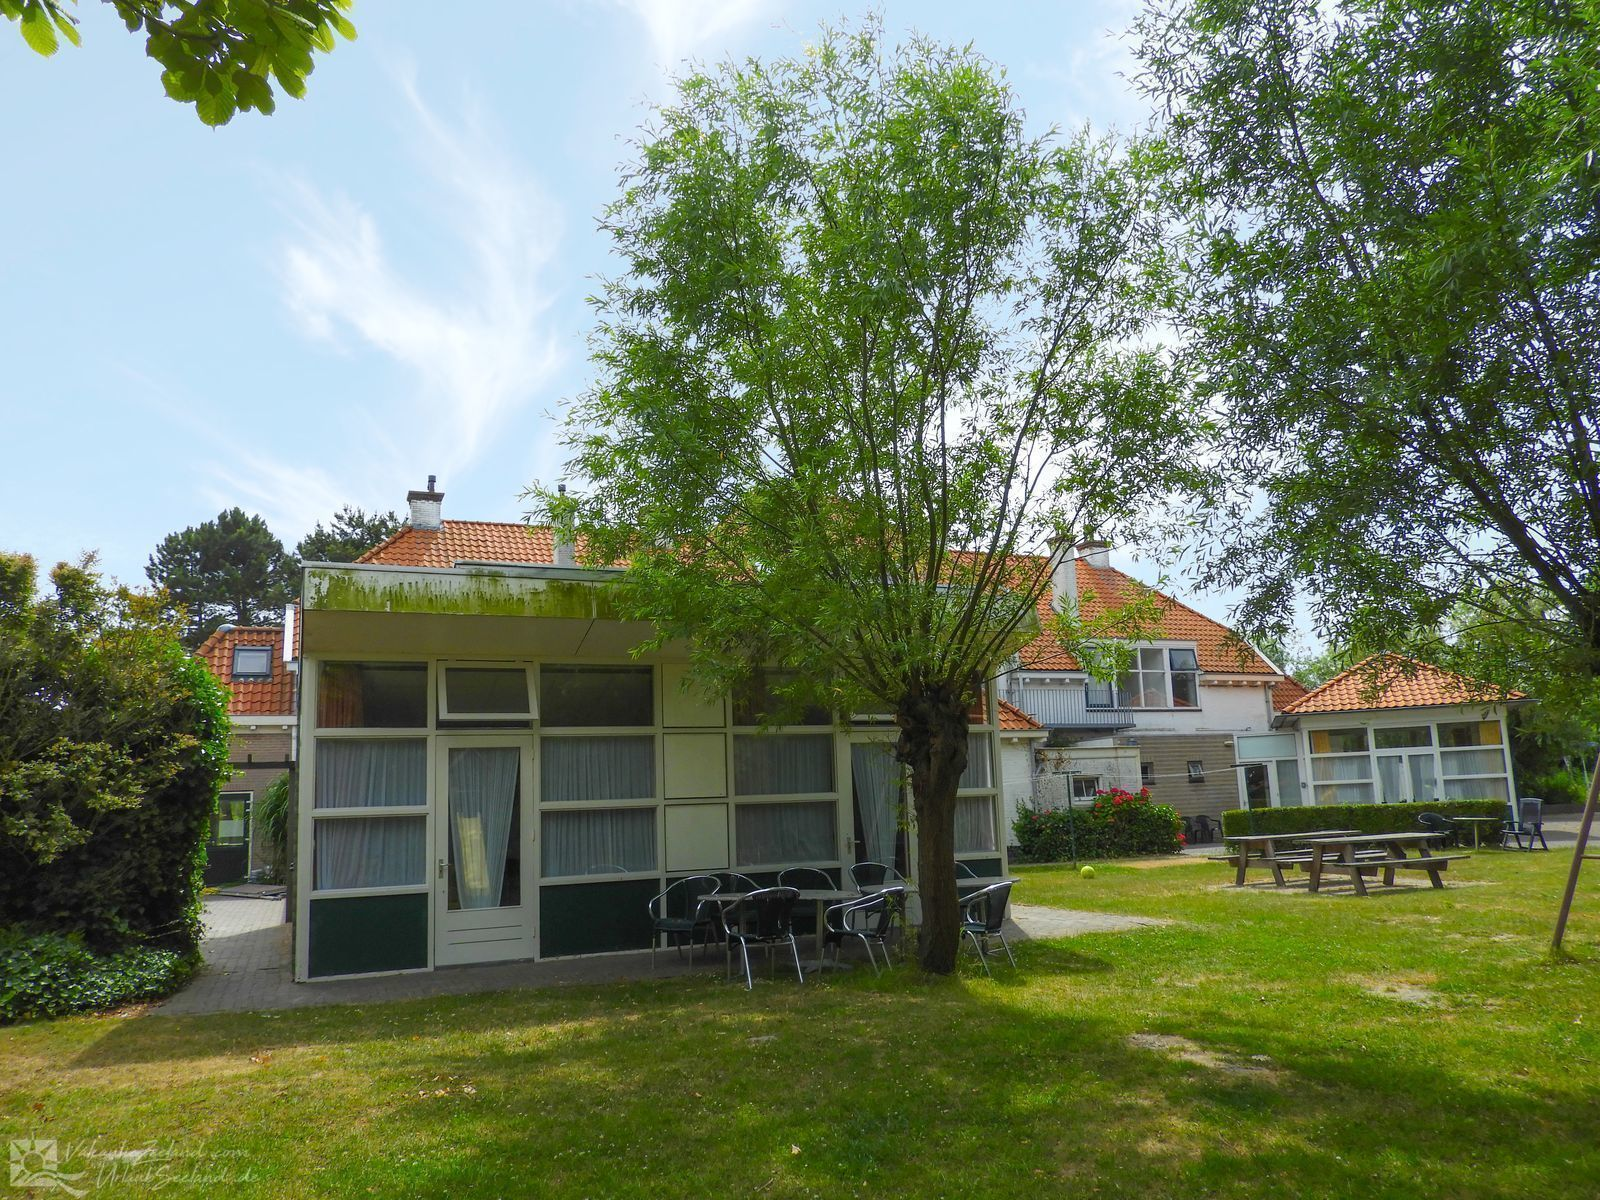 VZ130 Group accommodation Westkapelle